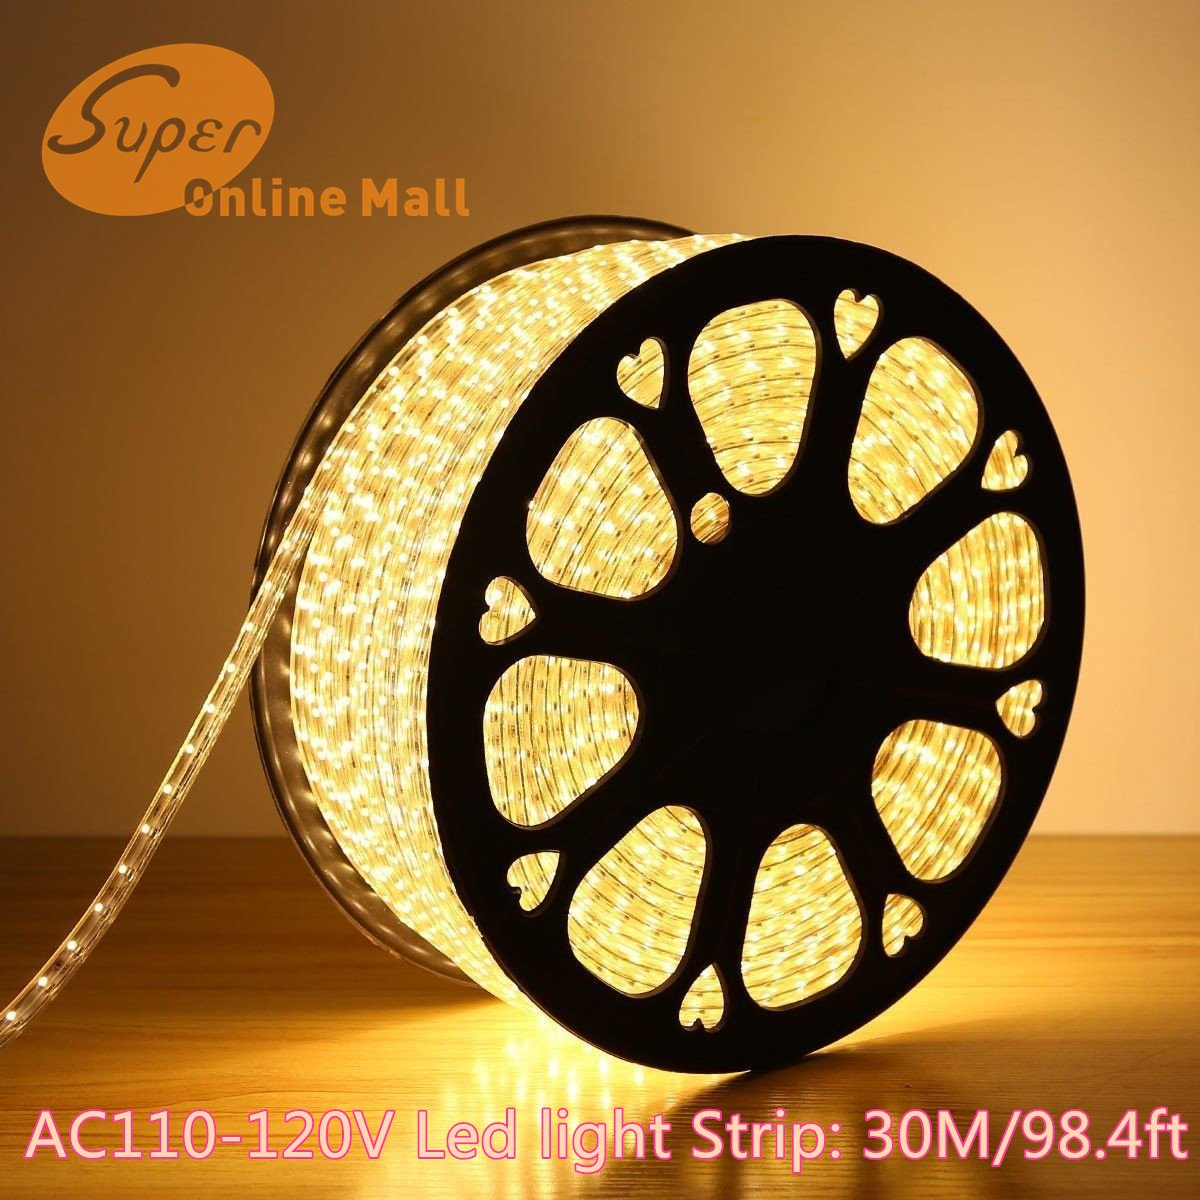 SuperonlineMall AC 110-120V Flexible Waterproof LED Strip Lights, 30m/98.4ft - Warm White by SuperonlineMall